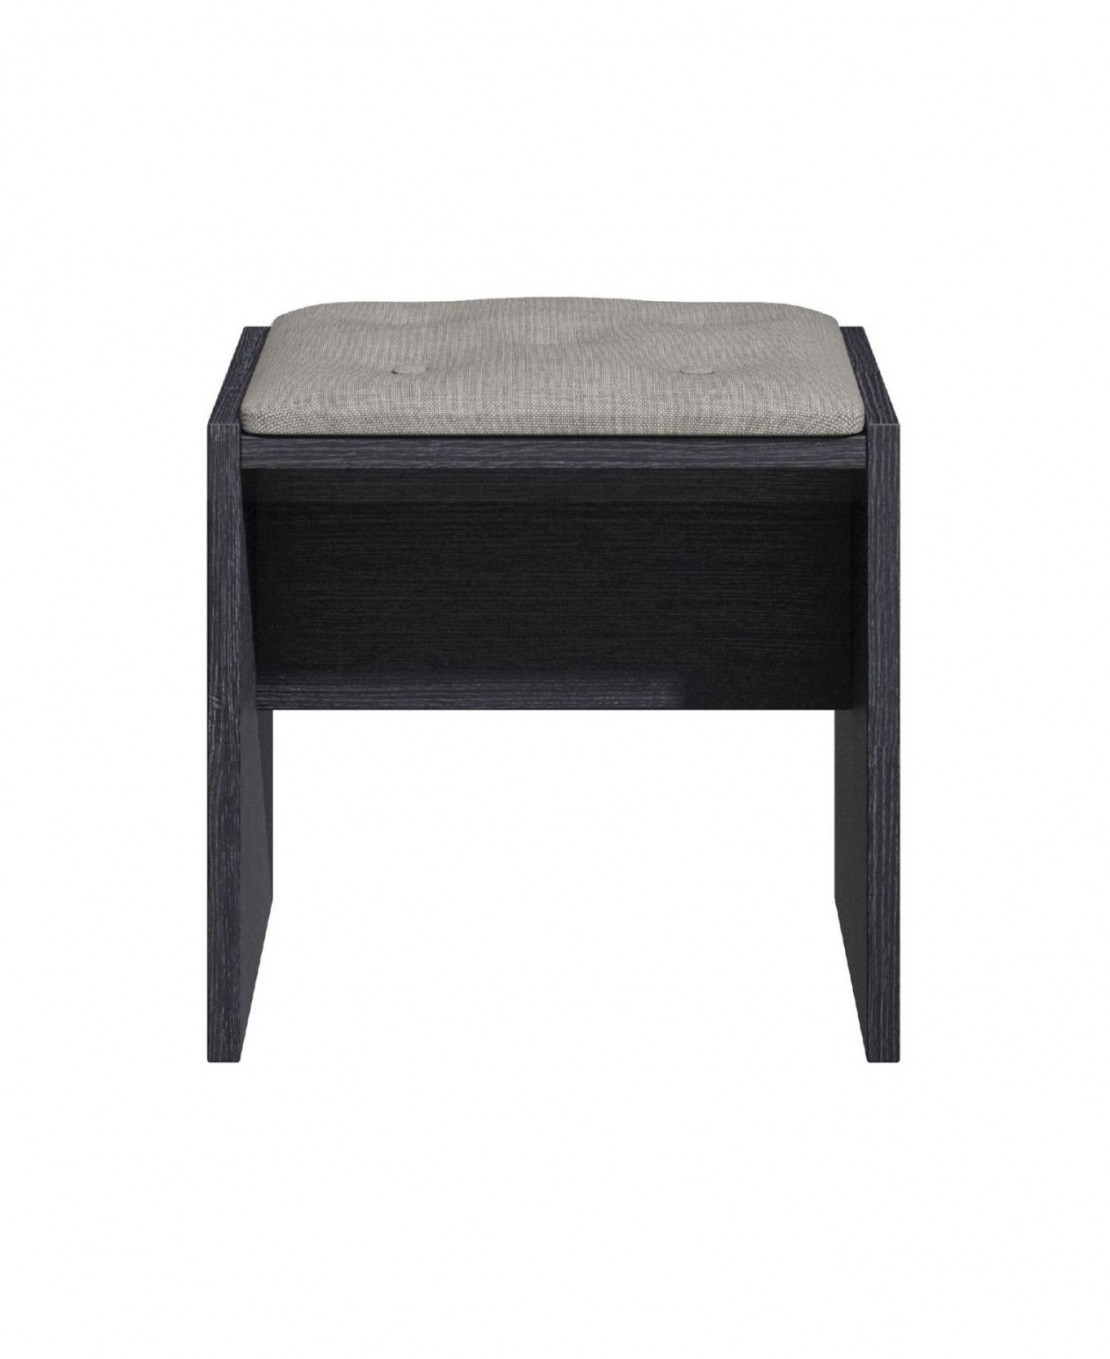 /_images/product-photos/kt-furniture-vardy-stool-grey-a.jpg